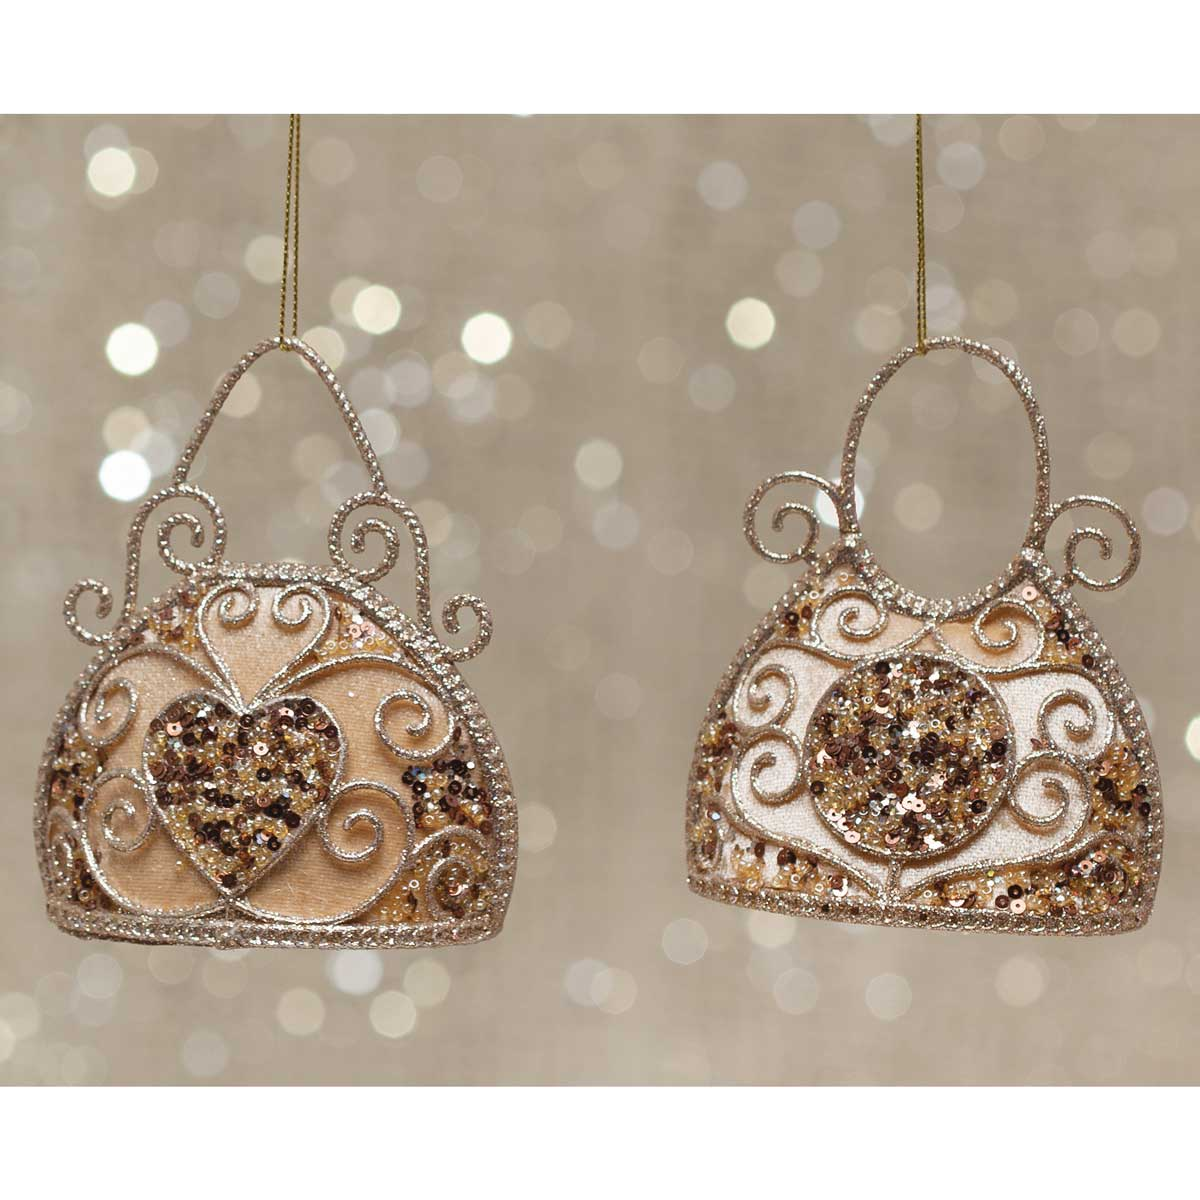 "NOEL PURSE ORNAMENT 5""X2""X4"" CHAMPAGNE v22"